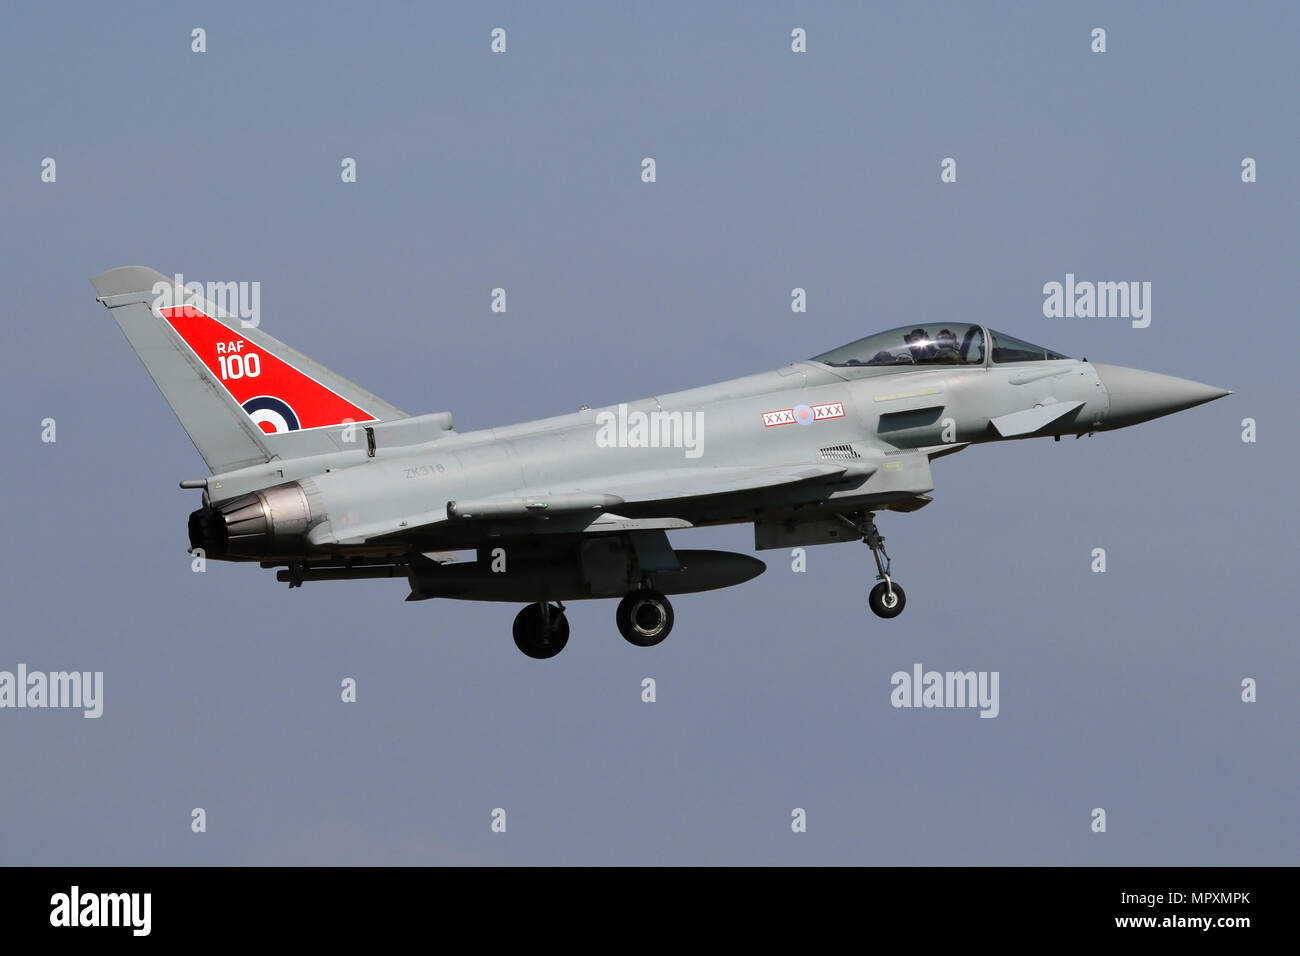 Eurofighter Typhoon FGR4 from 29 Squadron landing at RAF Coningsby. Aircraft shows the RAF 100 year anniversary markings for 2018. - Stock Image